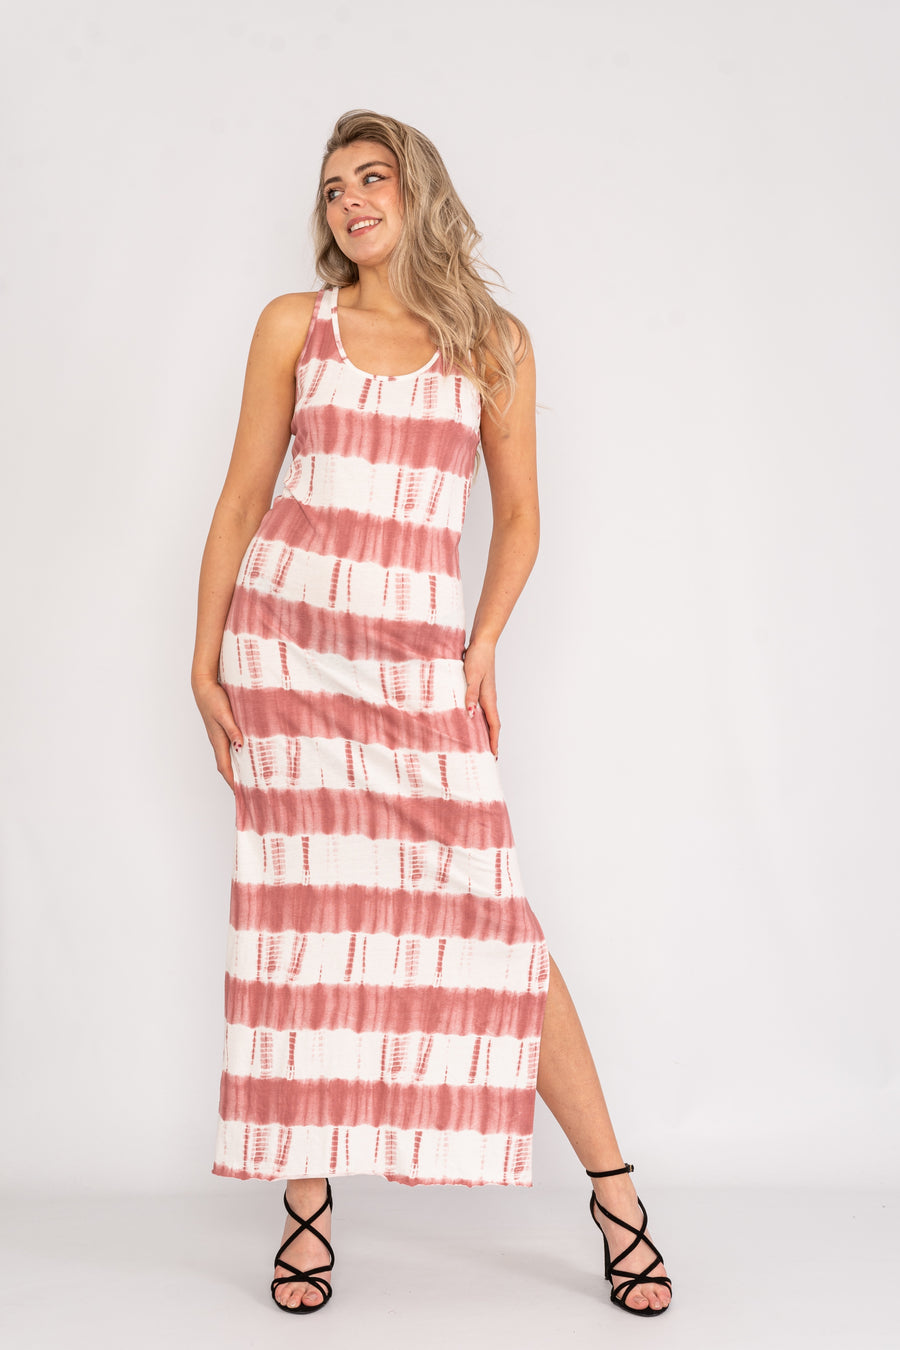 Striped maxi dress with side split.